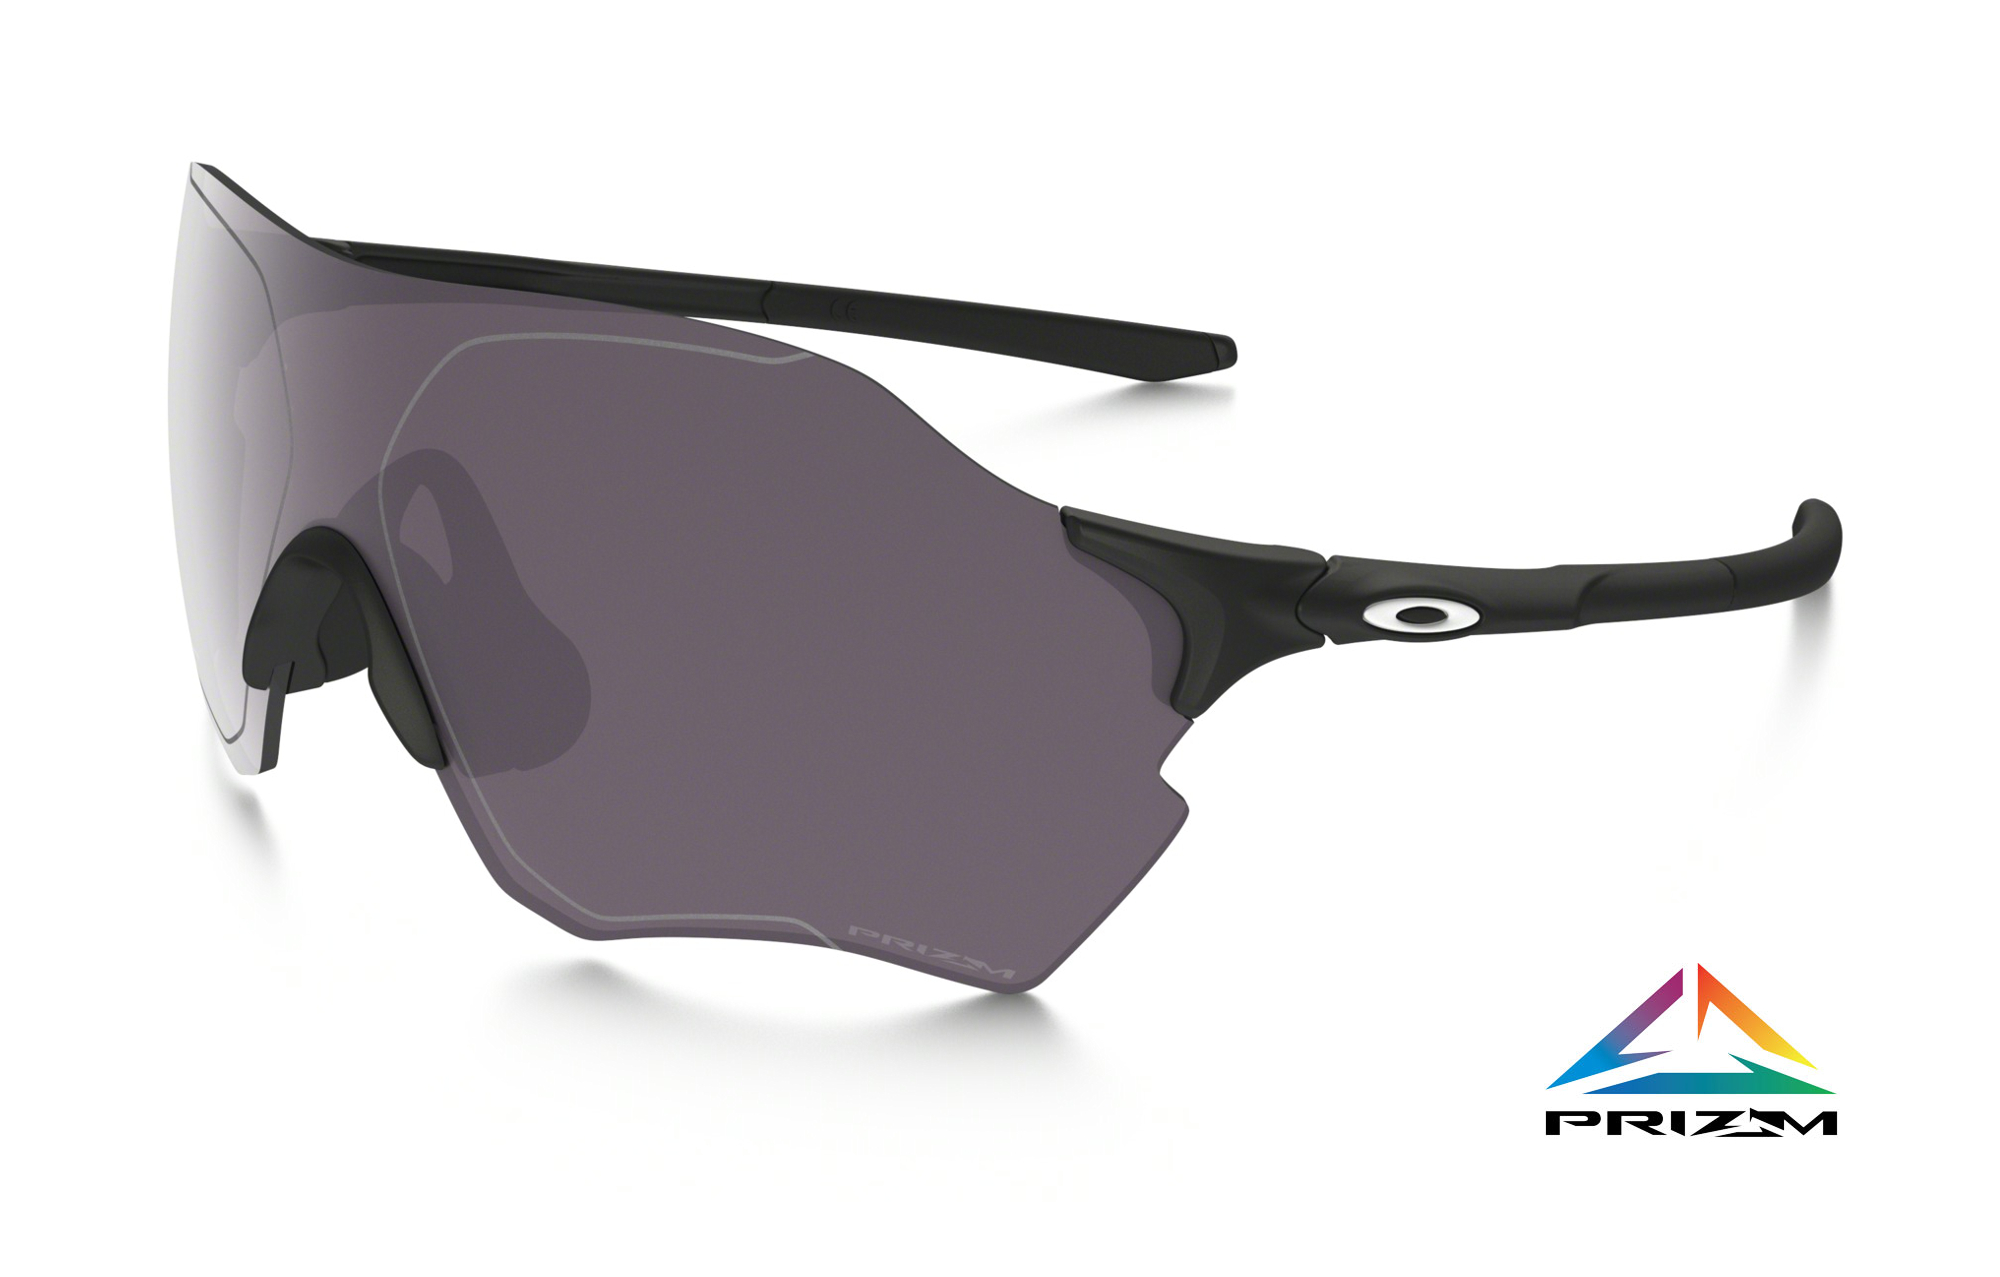 c072a0c7b0 ... inexpensive oakley sunglasses evzero range prizm daily polarized black  mat black ref oo9327 06 76ee8 6d298